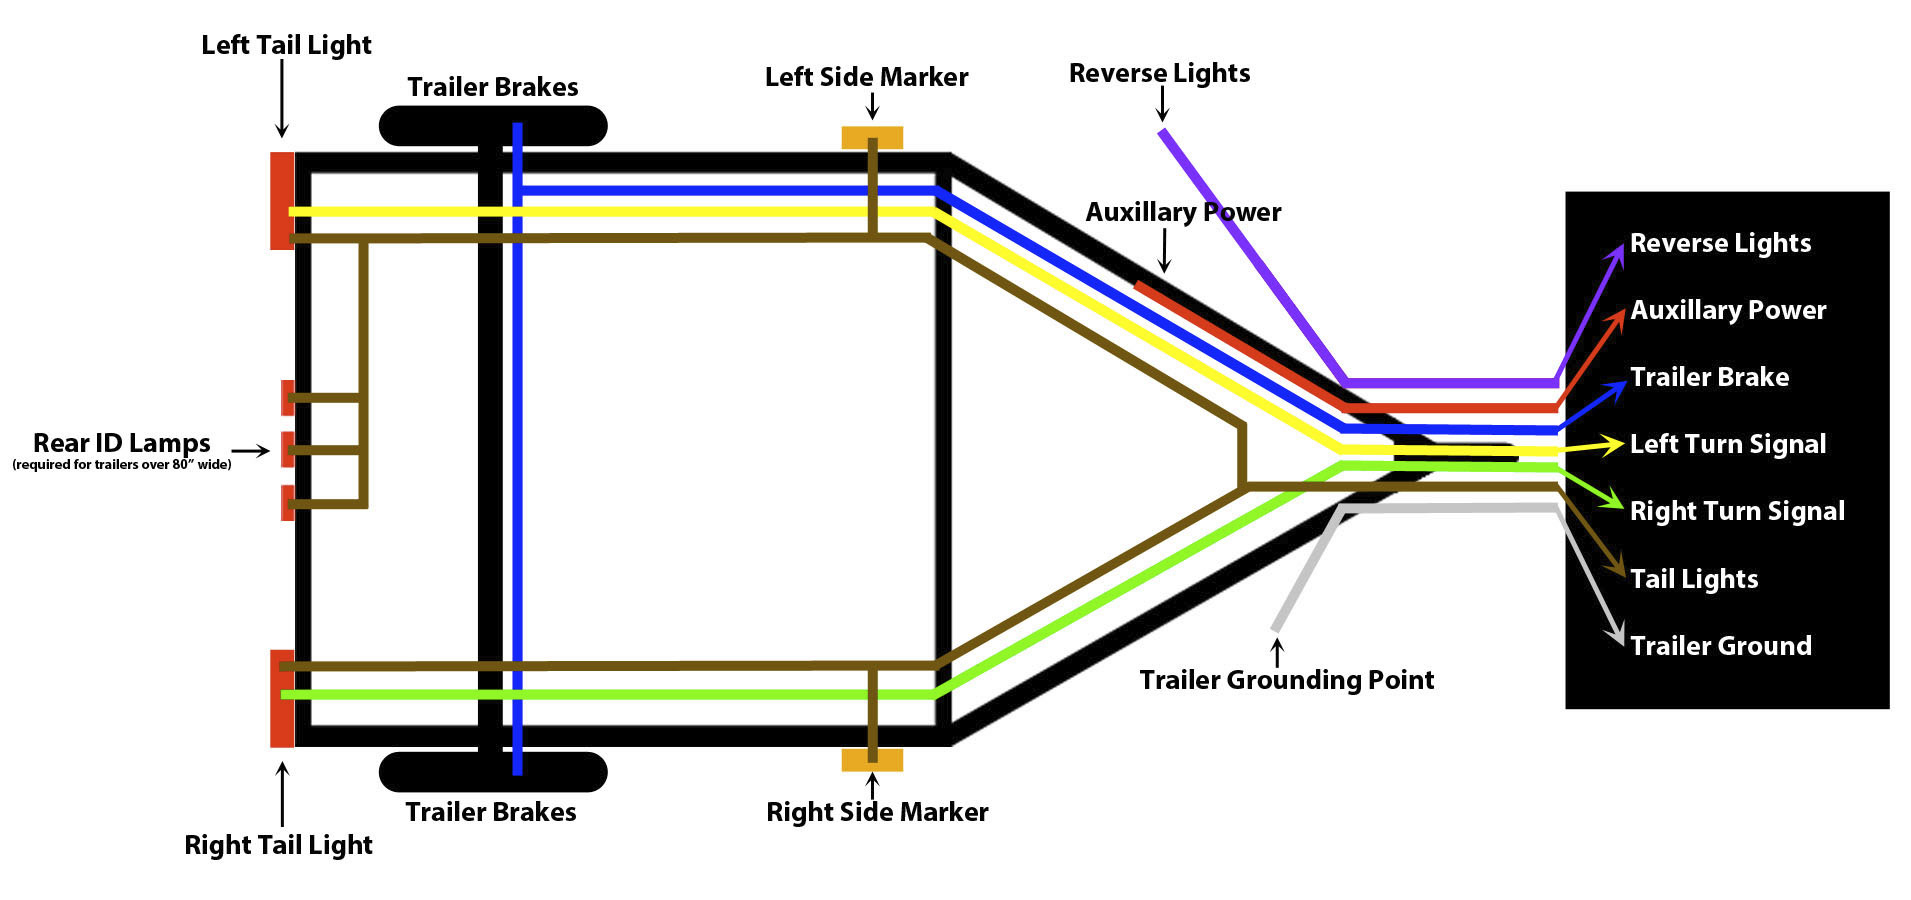 How To Wire Trailer Lights - Trailer Wiring Guide & Videos - Cargo Trailer Wiring Diagram